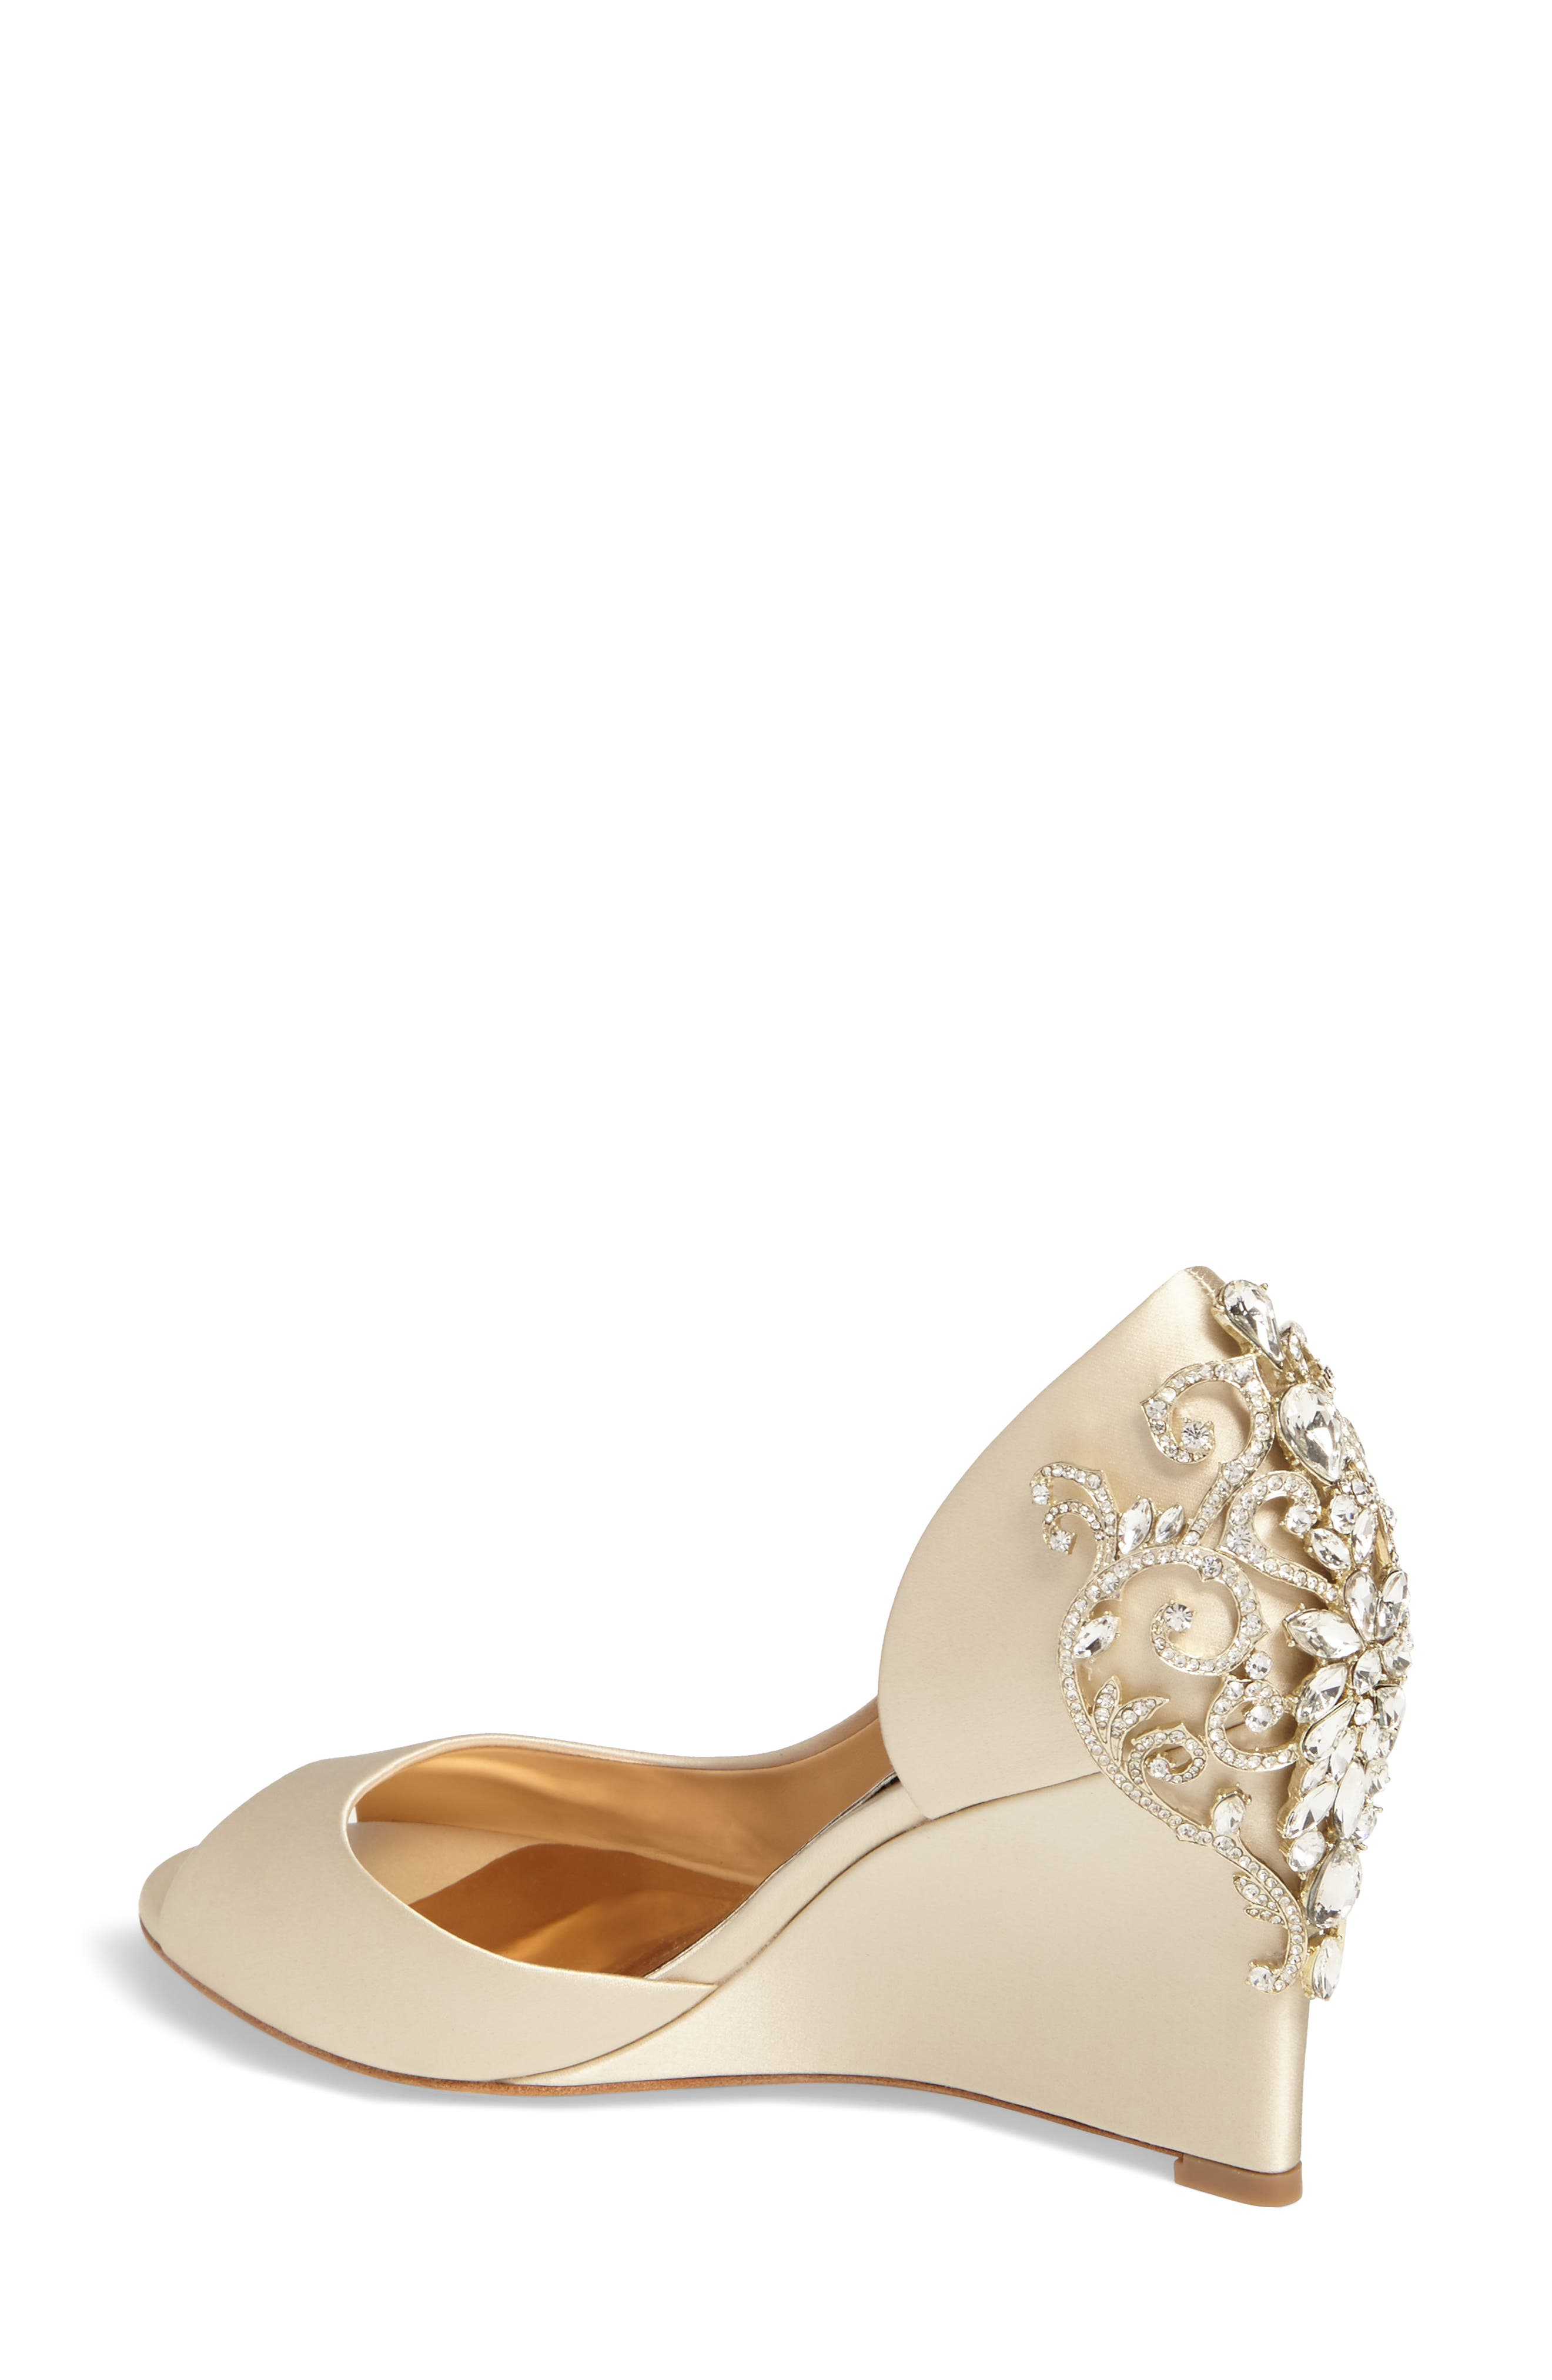 Meagan Embellished Peep Toe Wedge,                             Alternate thumbnail 2, color,                             IVORY SATIN